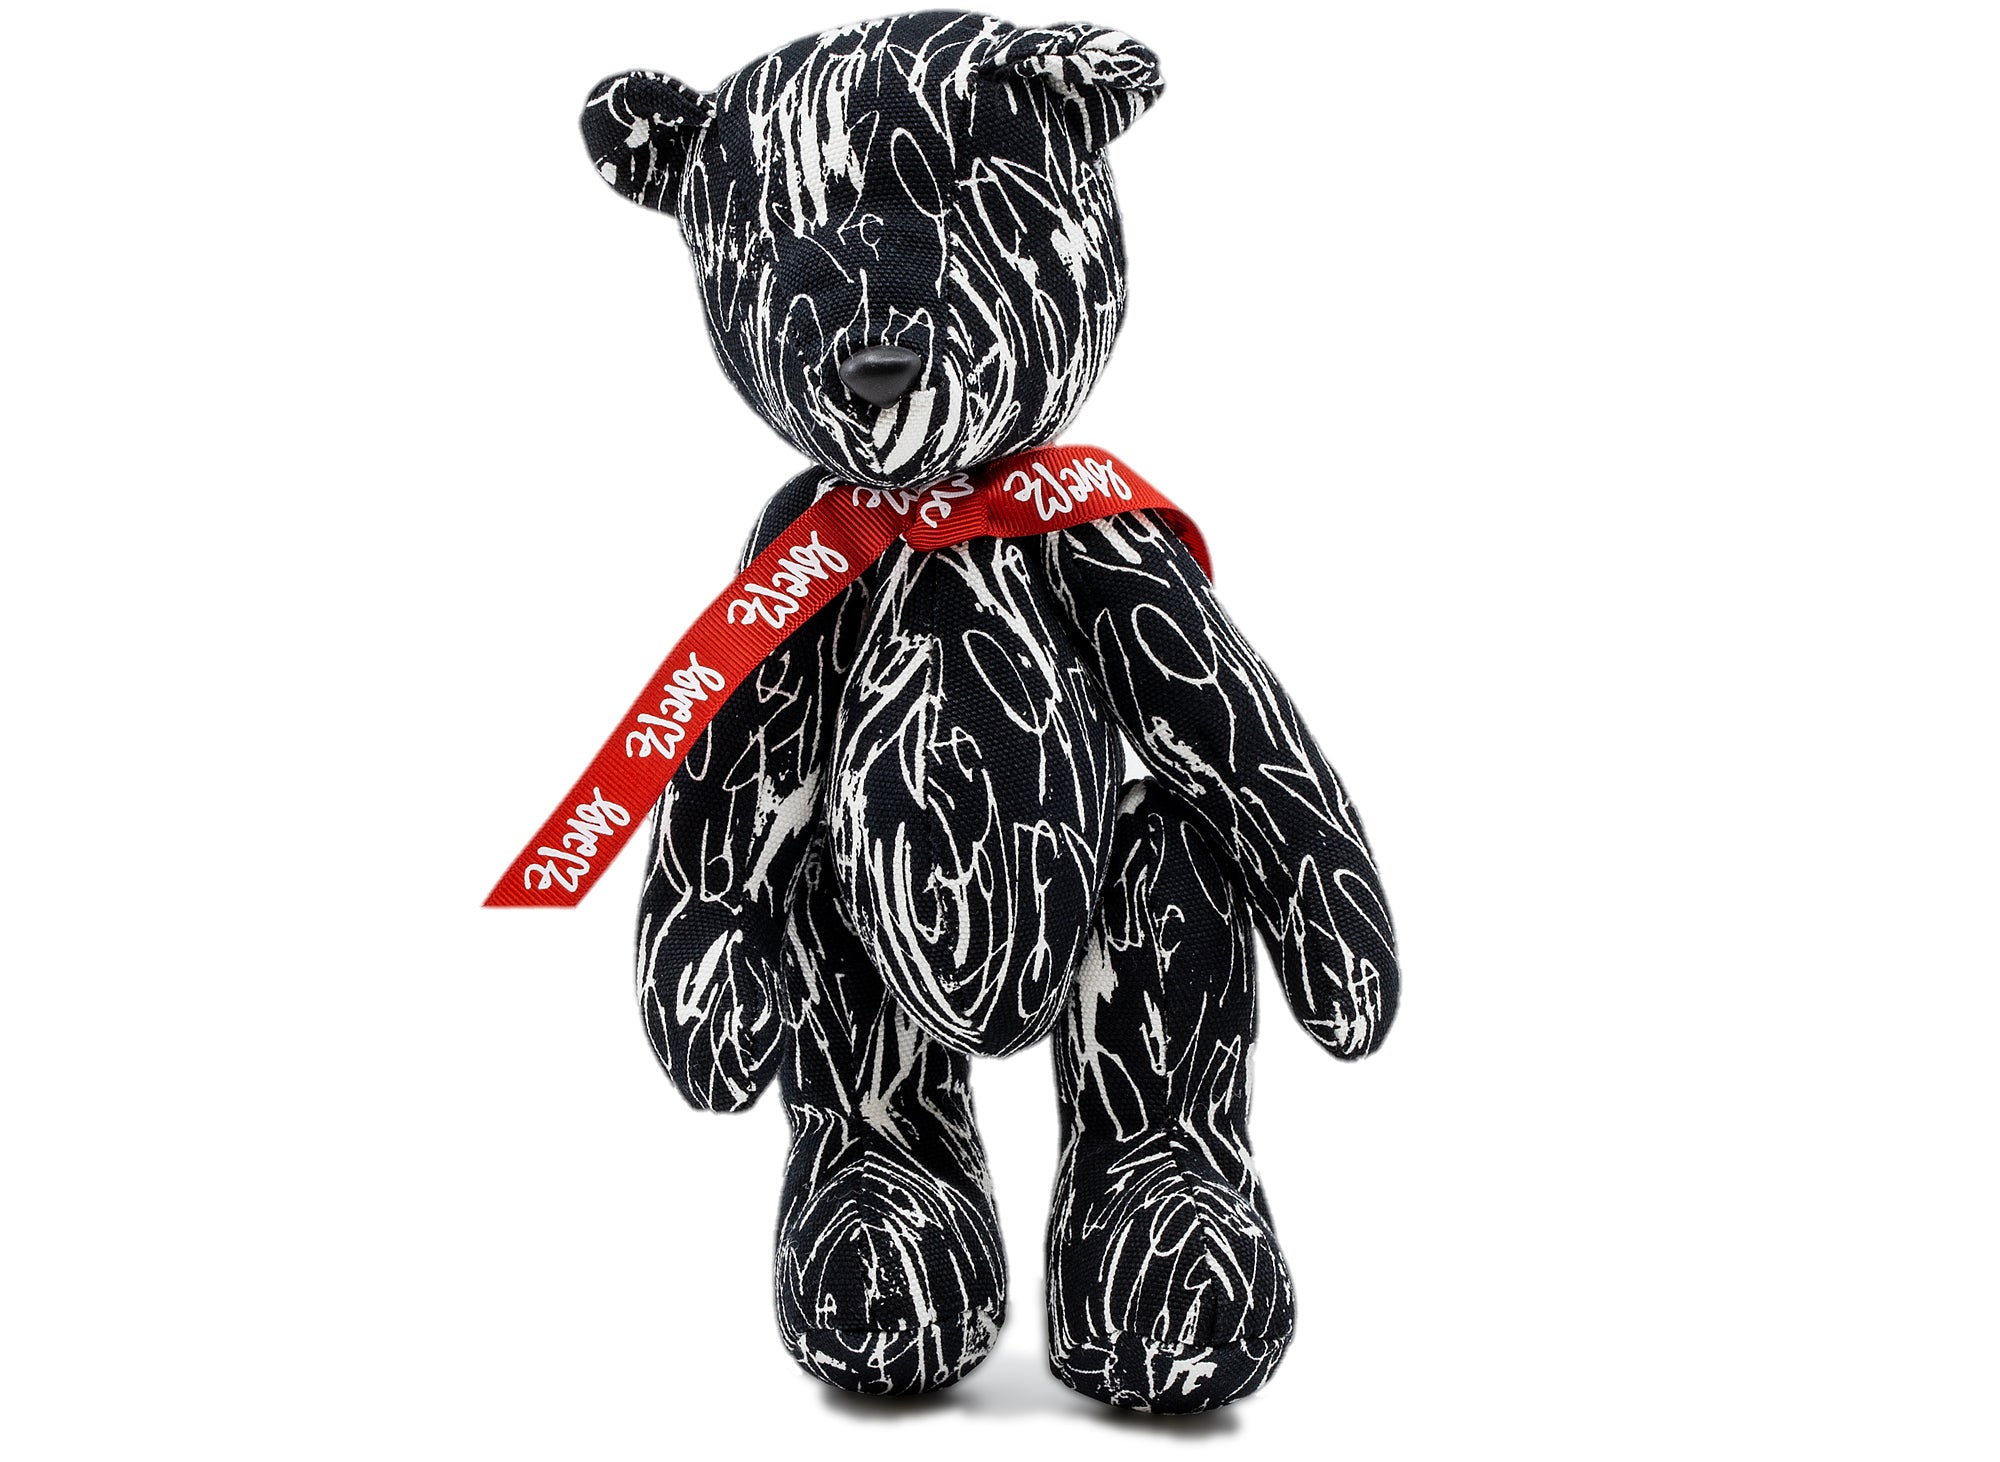 Medicom Toy x Curtis Kulig 'All Over' Teddy Bear